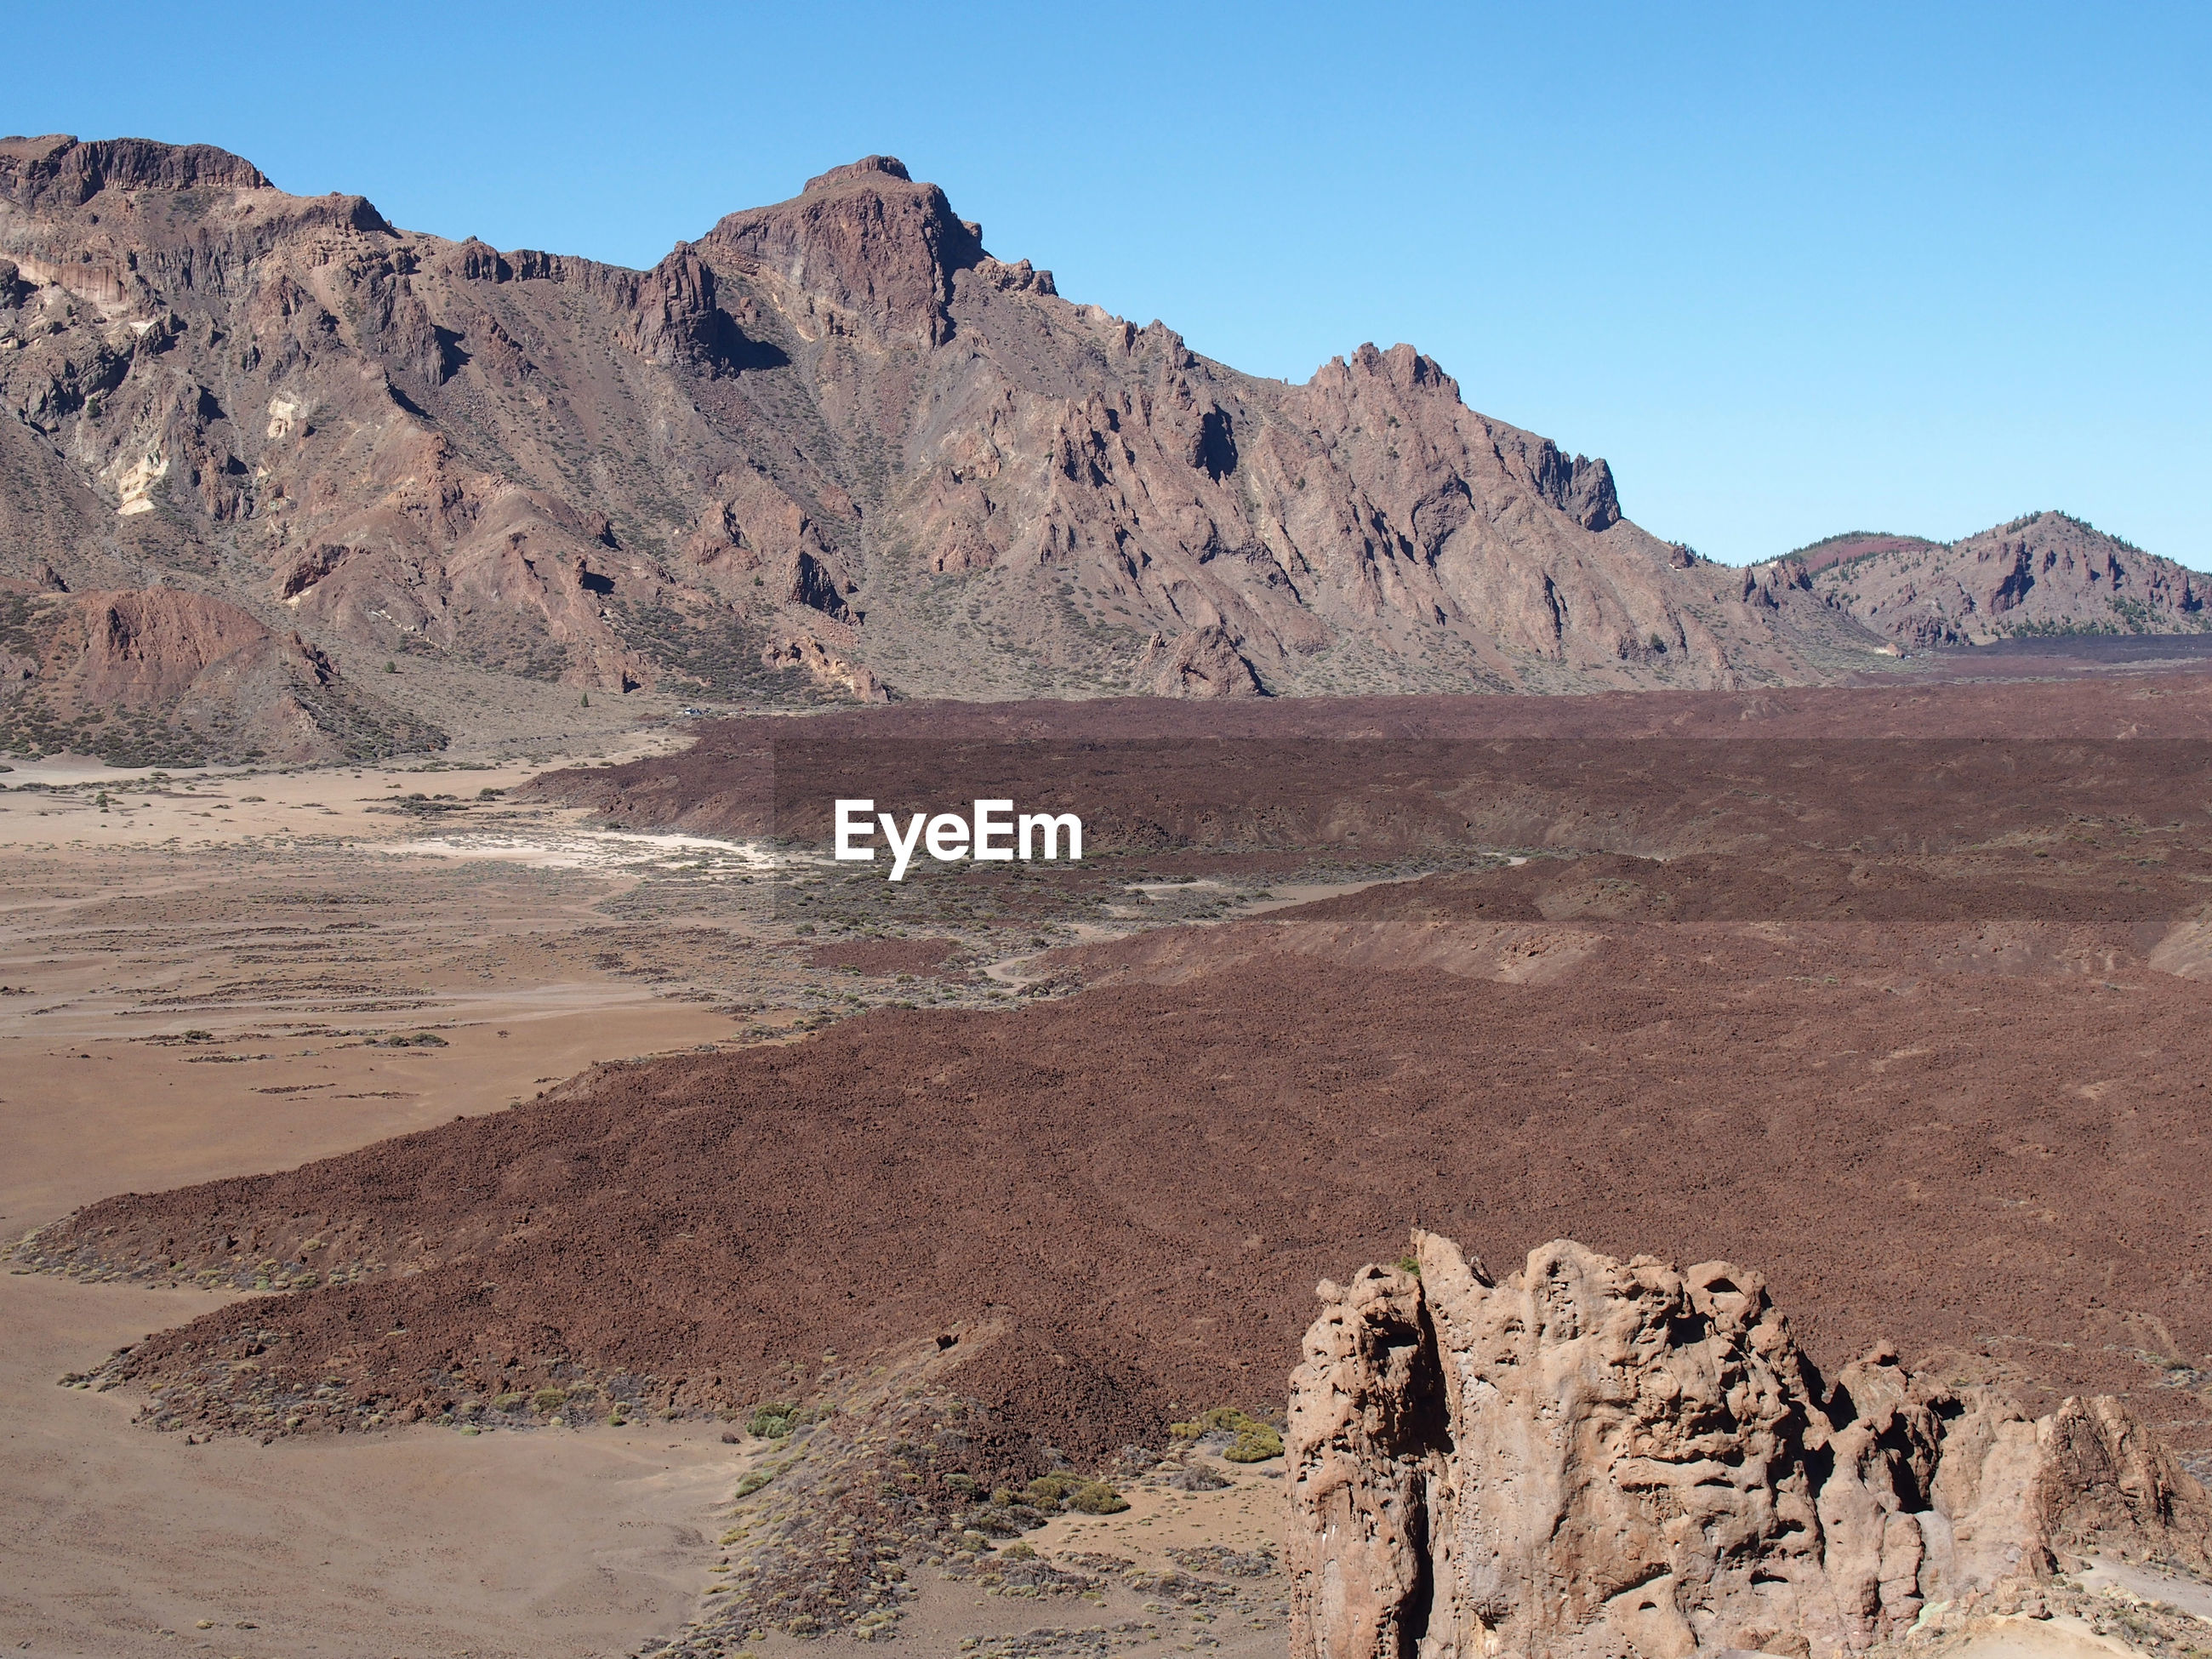 PANORAMIC VIEW OF DESERT